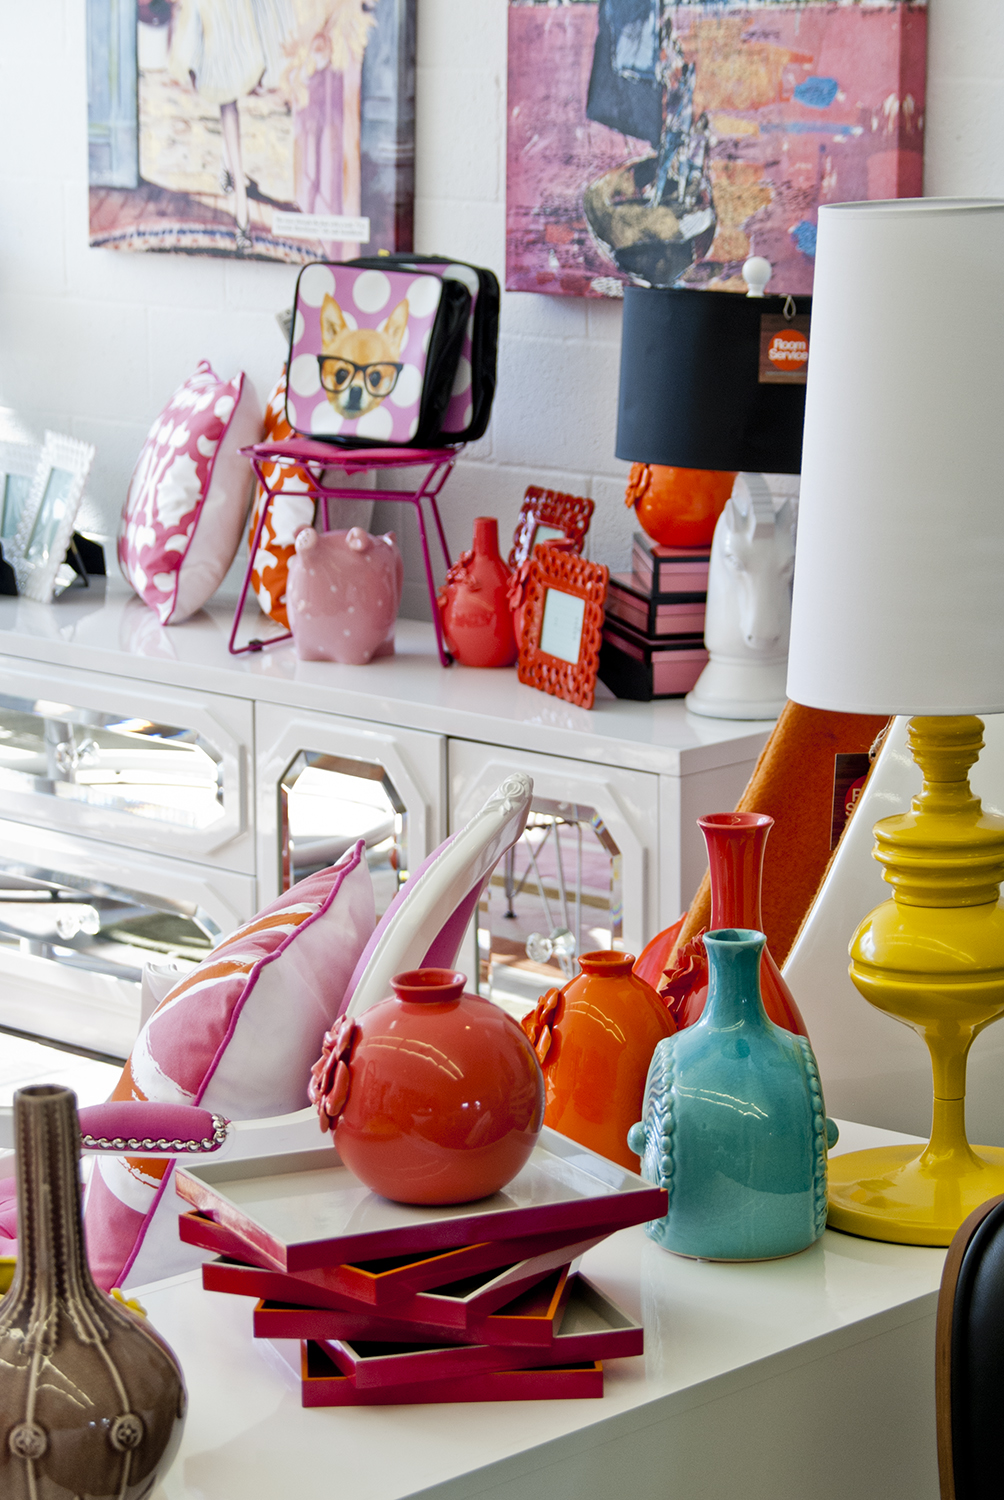 As you can see our modern designs are full of color and fun fabrics if you are visiting palm springs for a mini getaway or relocating to this amazing gem